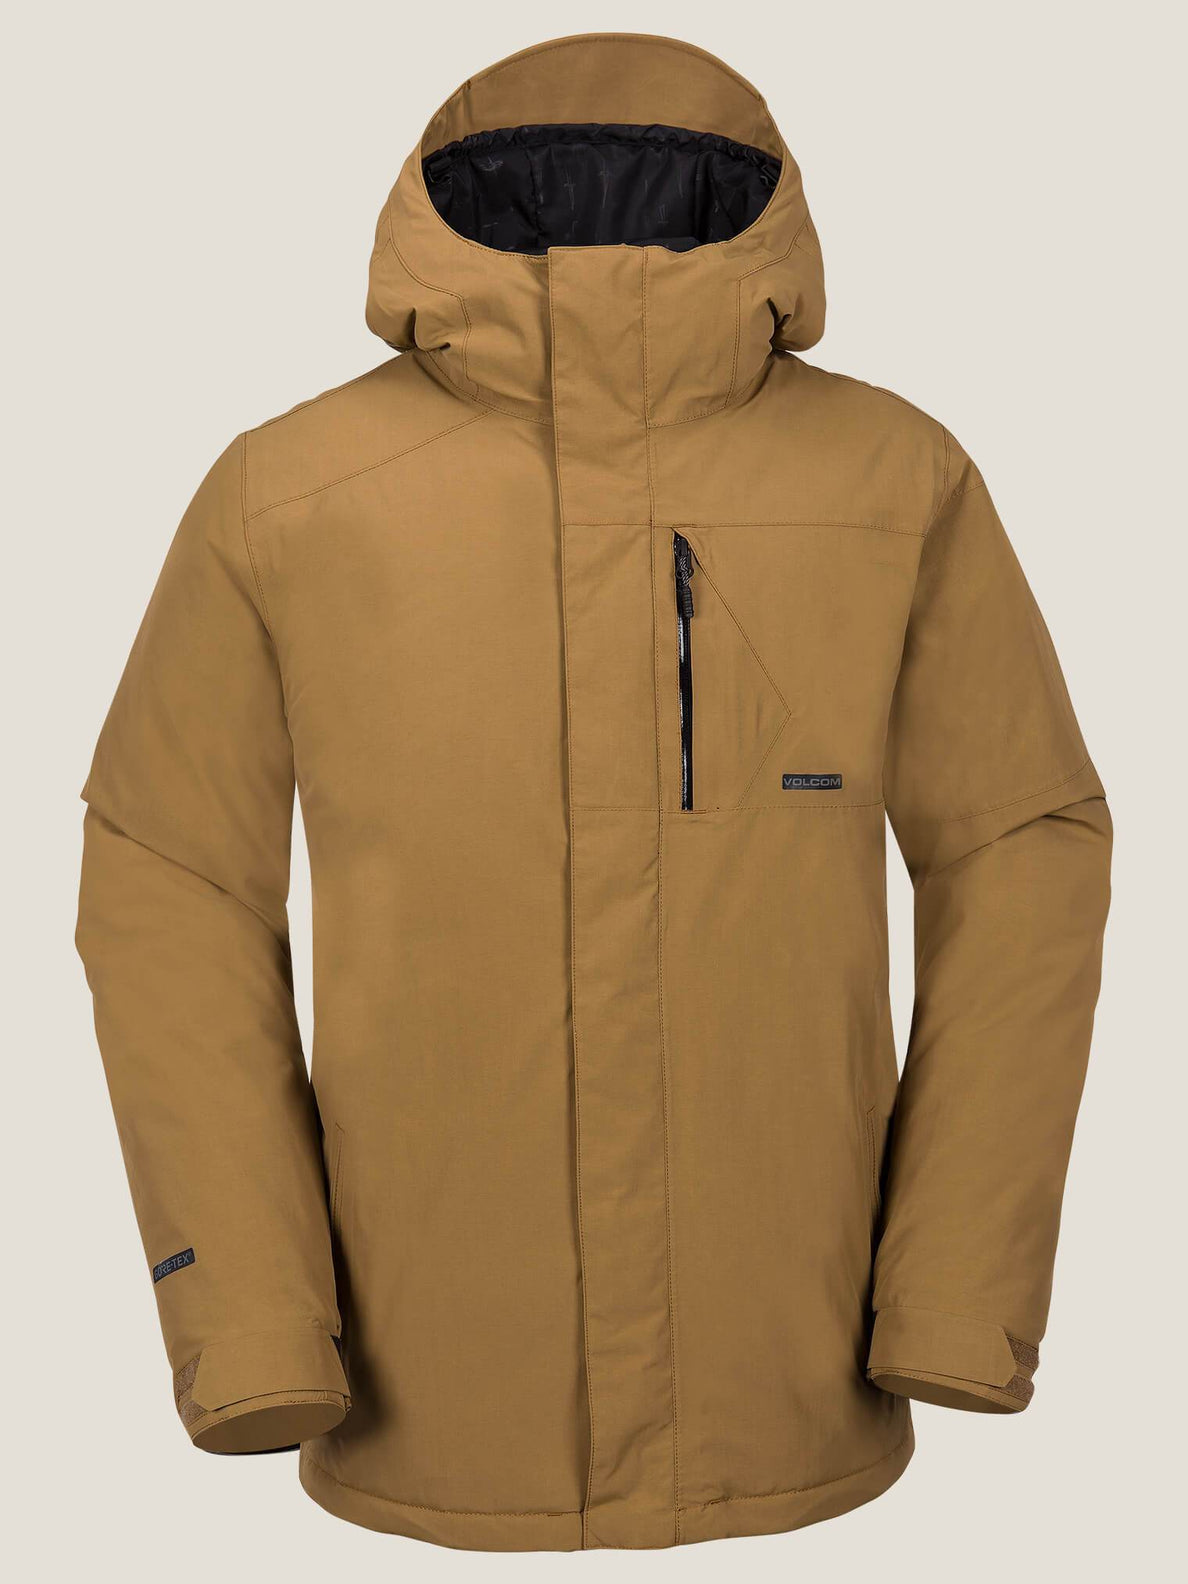 L Insulated Gore-tex® Jacket In Shepherd, Front View